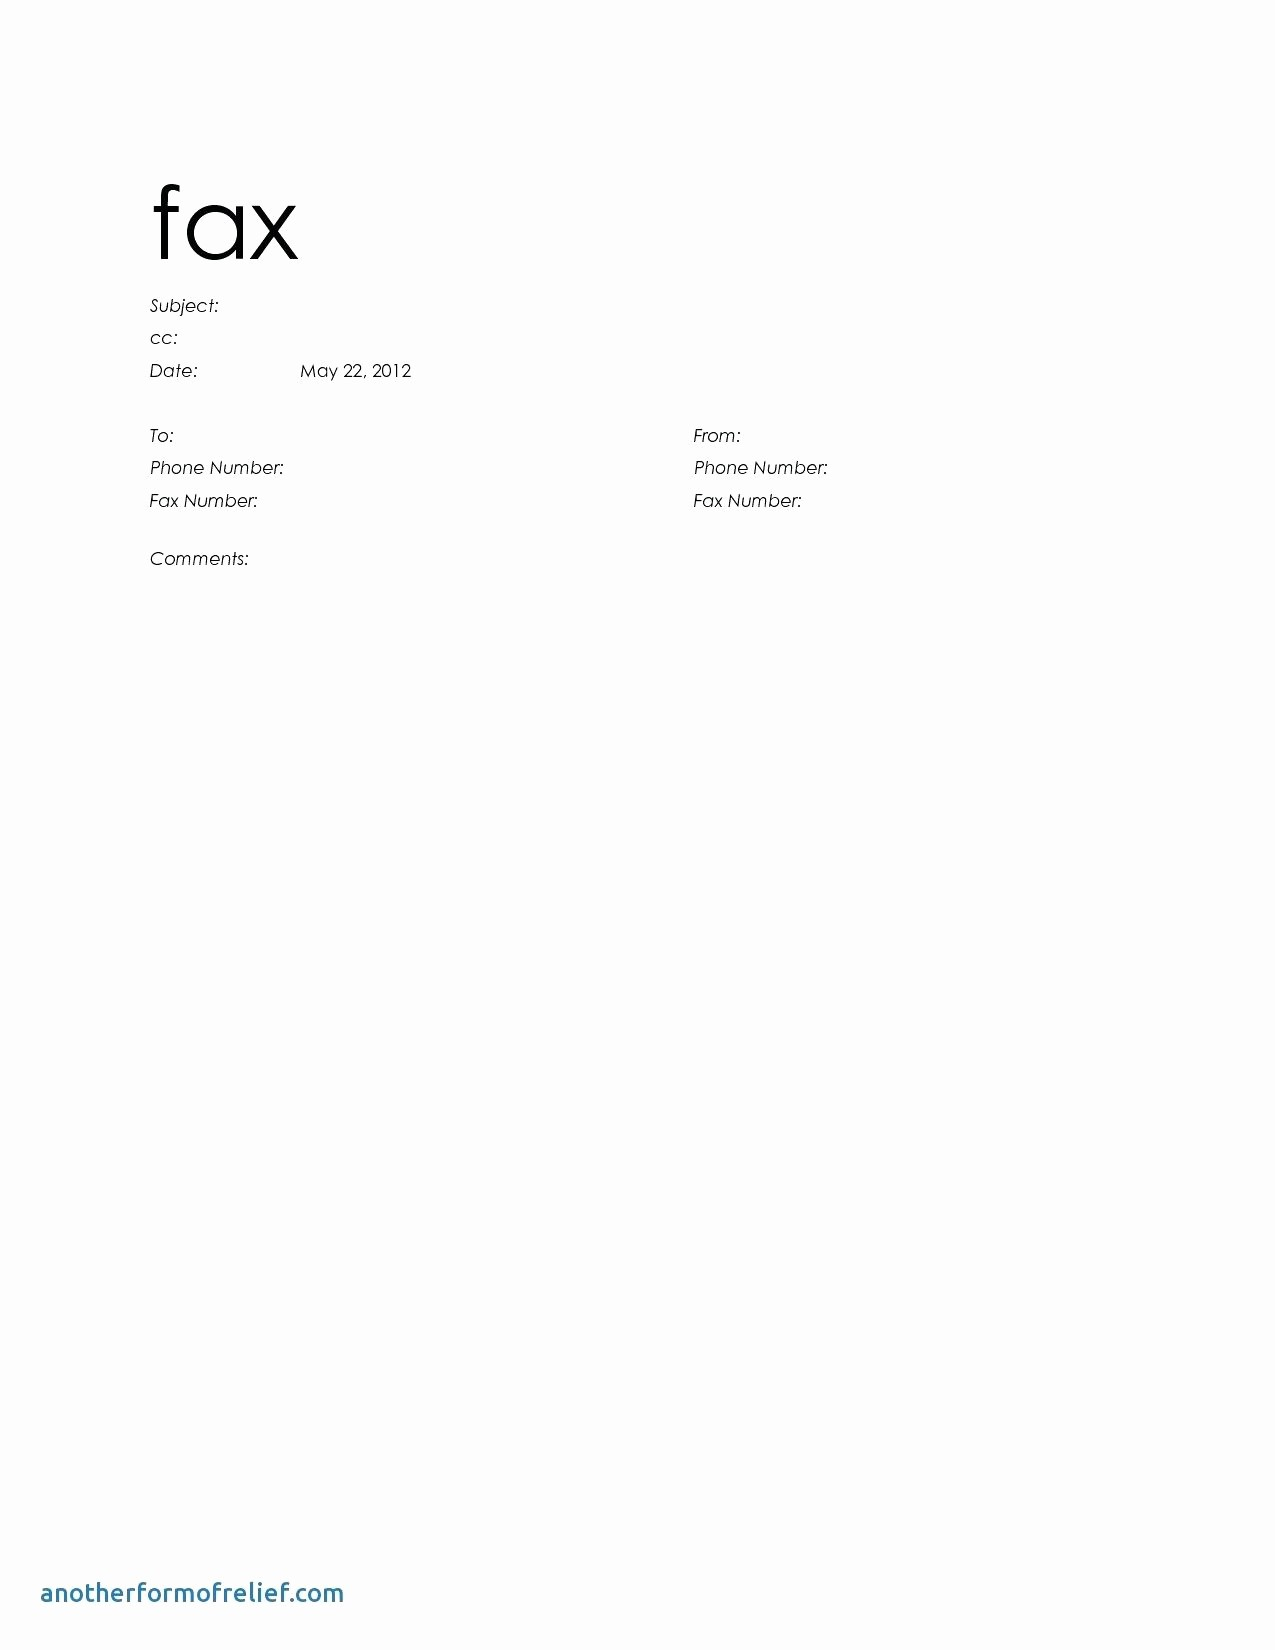 Fax Front Cover Sheet Template Elegant Fax Cover Sheet Word Template